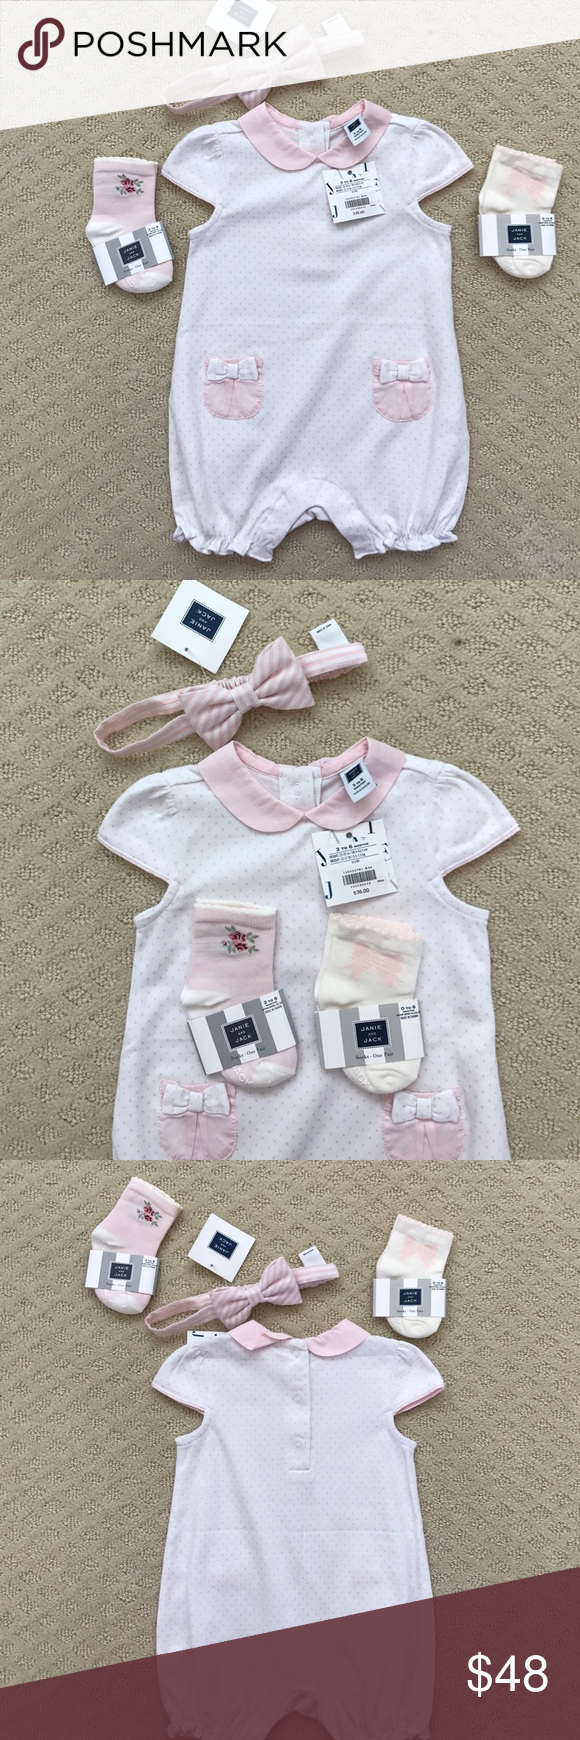 NWT Janie and Jack Baby Girl Set Brand new with tags! Adorable baby girls set includes romper size 3-6 months, headband one size, and 2 sets of matching socks. Makes the perfect gift! I prefer to sell as a set but will consider selling pieces individually. Bundle & save! Janie and Jack Matching Sets